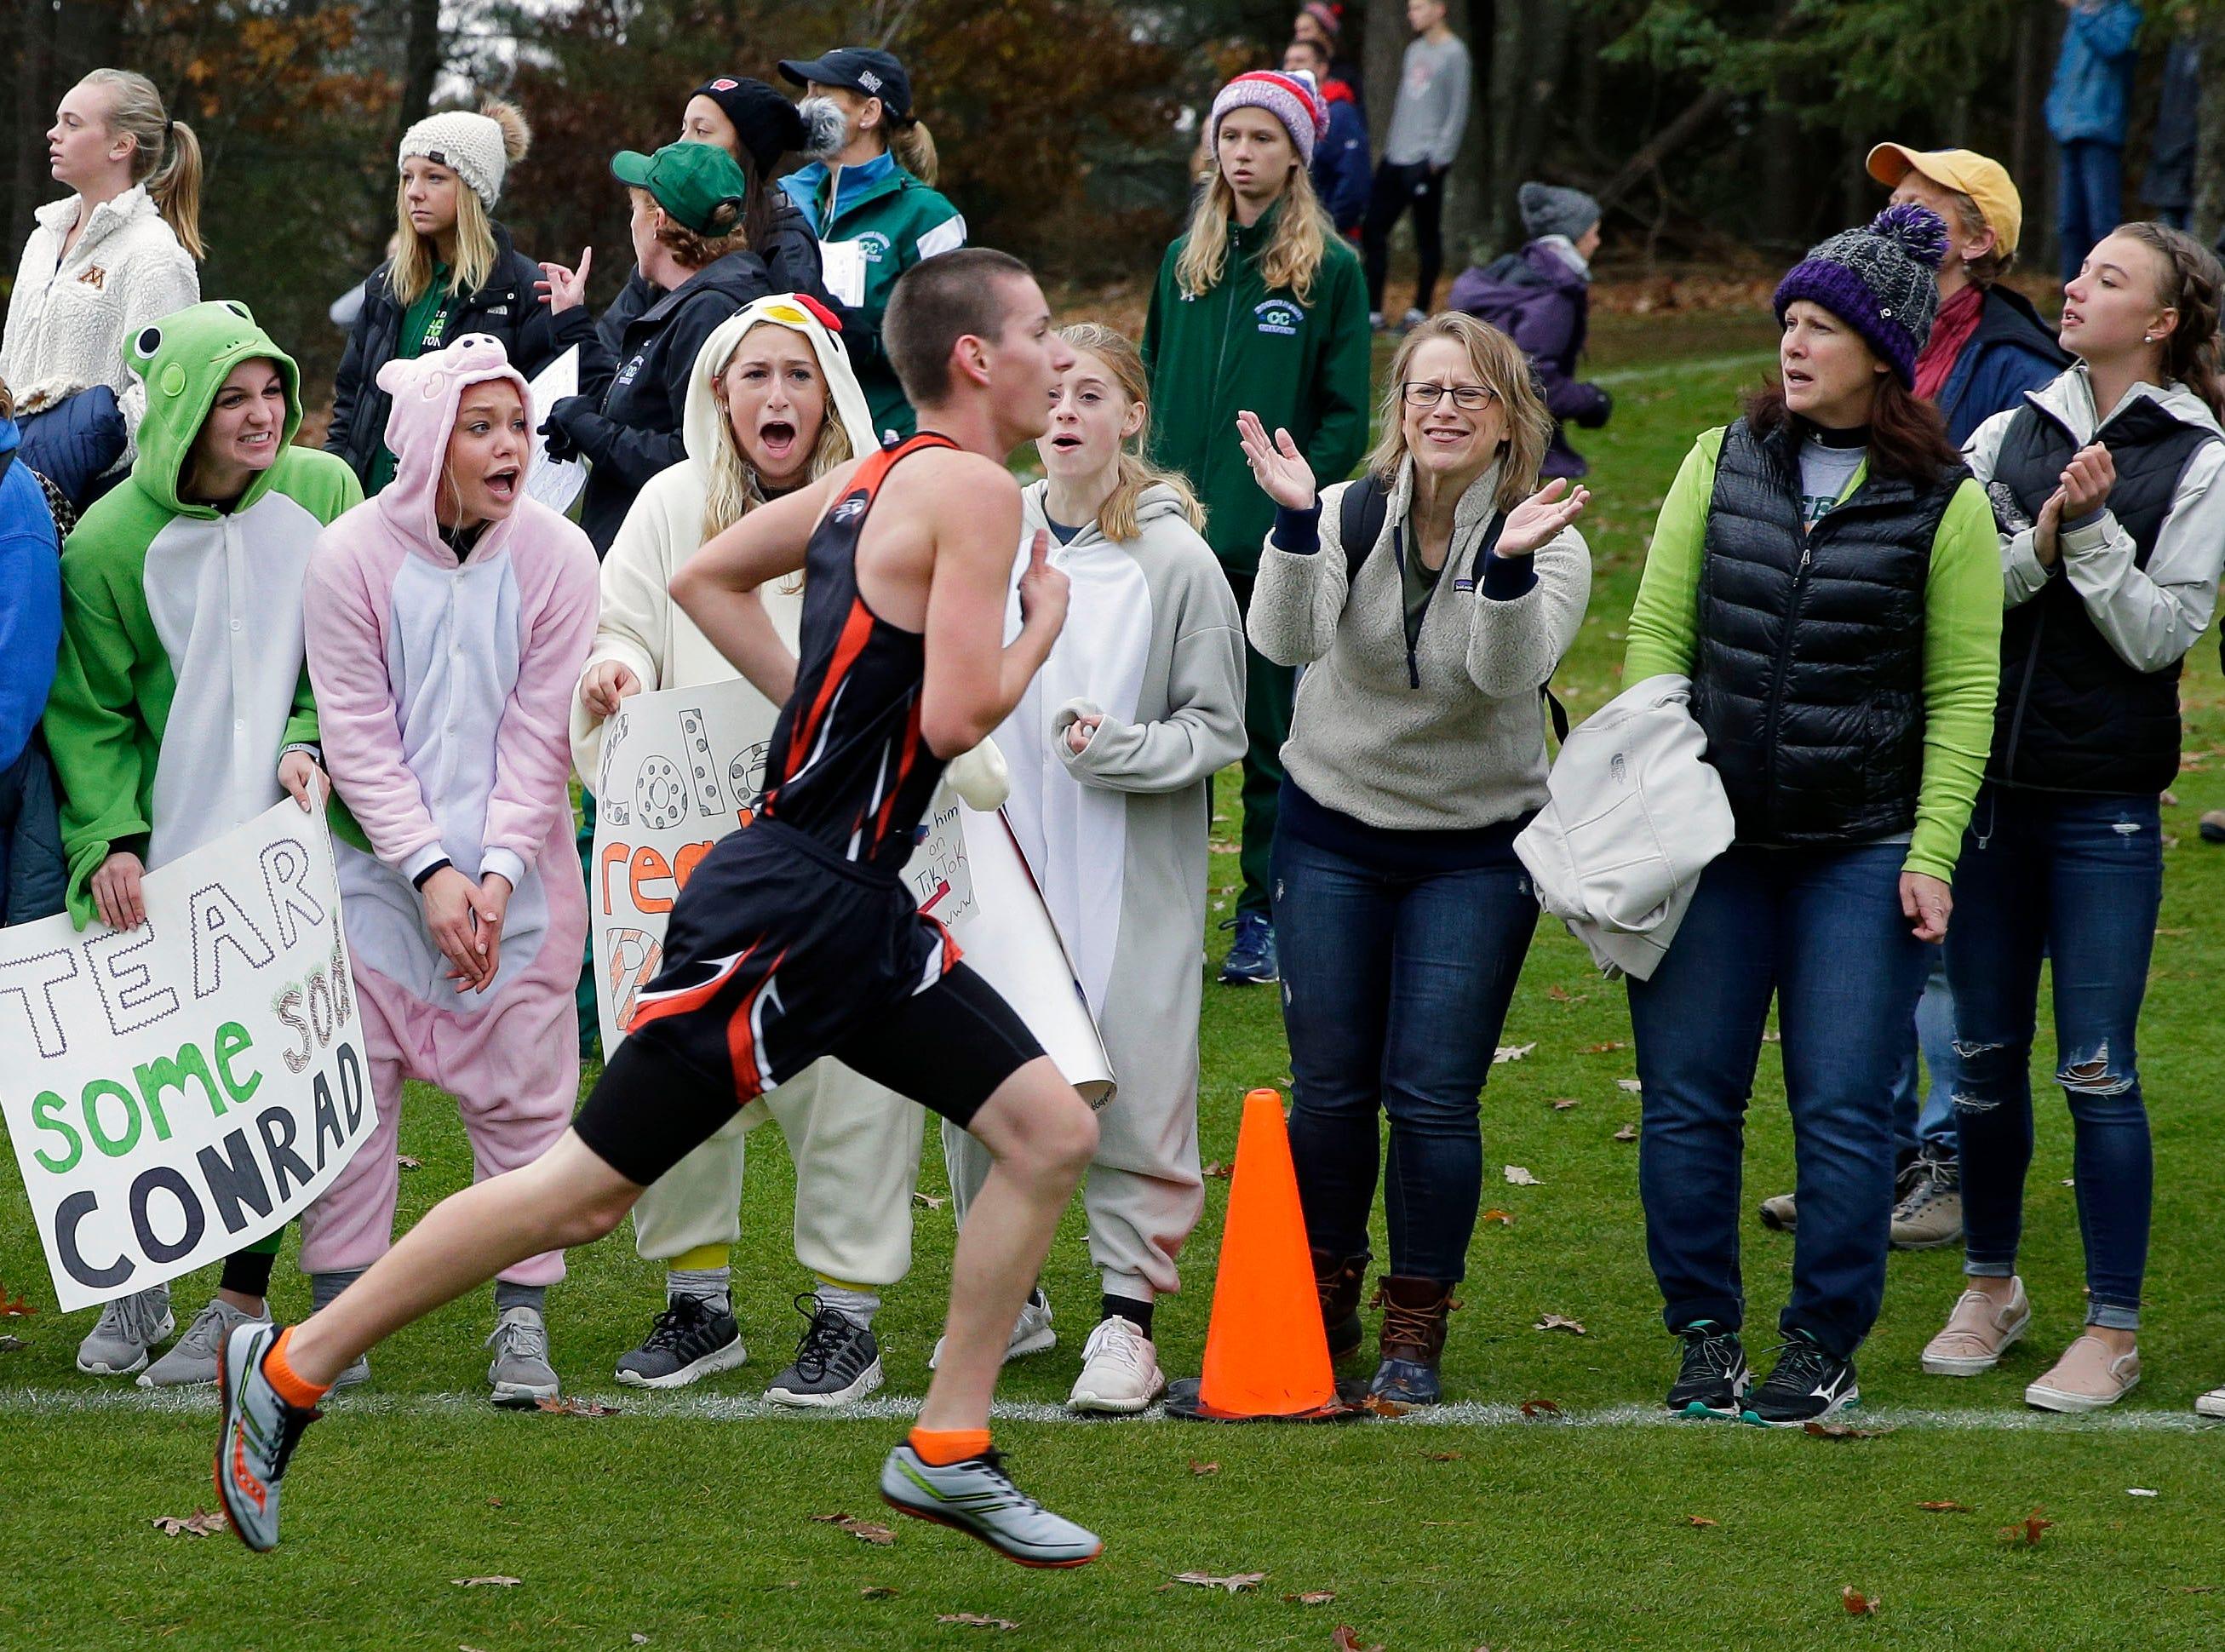 Fans cheer for runners as the 2018 WIAA Cross Country State Meet takes place Saturday, October 27, 2018, at the Ridges Golf Course in Wisconsin Rapids, Wis.